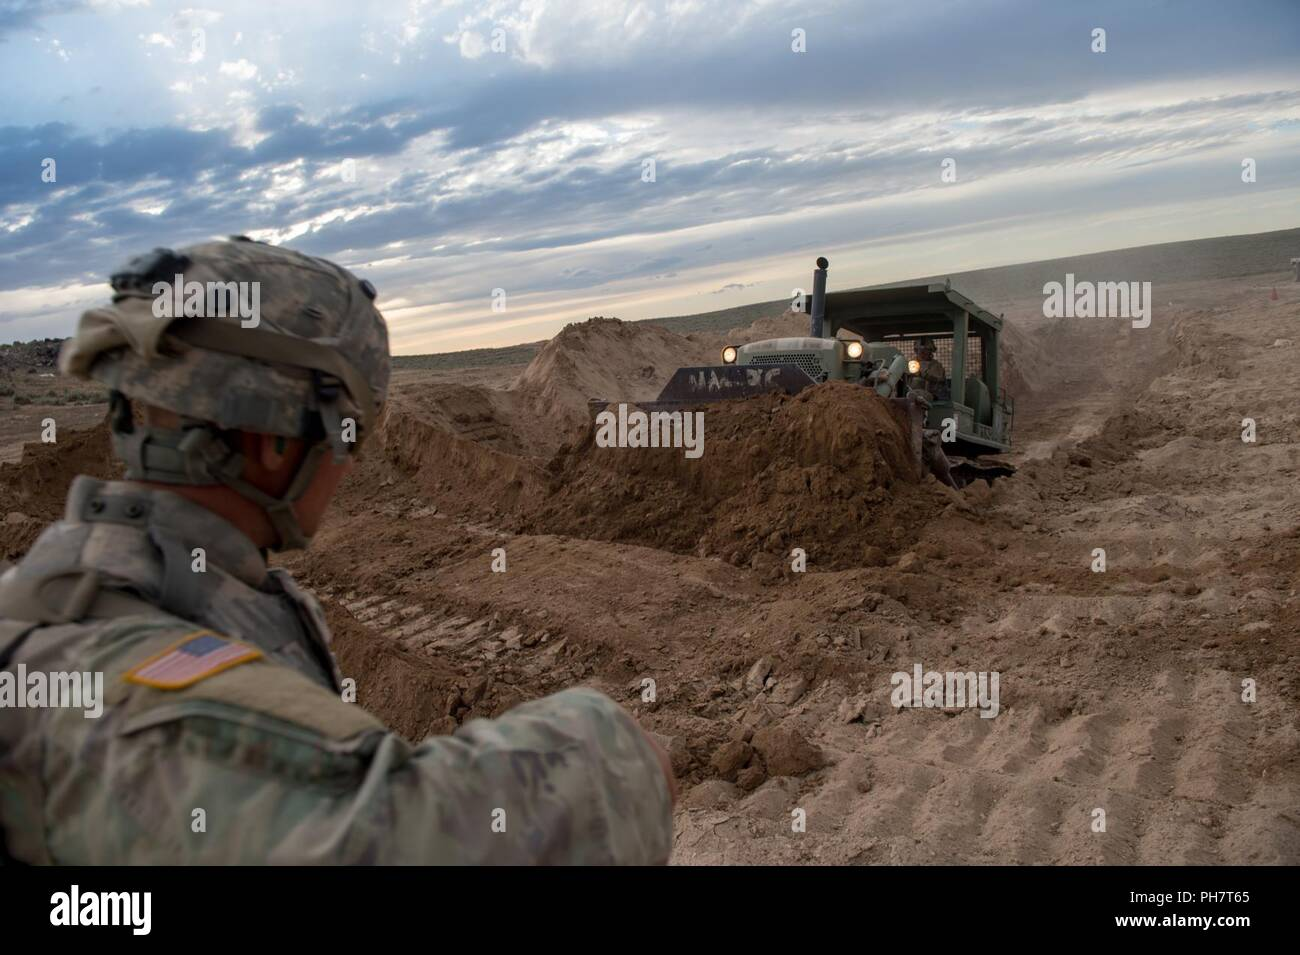 Engineers with the Idaho Army National Guard's 116th Brigade Engineer Battalion conduct training in fighting positions for crew-served weapon teams, M1 Abrams and M2 Bradley turret and hull defilades on June 17th, 2018, Orchard Combat Training Center, south of Boise, Idaho. Combat engineers with the 116th BEB participate in an eXportable Combat Training Capability rotation at the OCTC for its National Training Center rotation in June 2019.More than 3,000 Soldiers from at least five Army National Guard states, the U.S. Army, the U.S. Army Reserve and the British Army Reserve's 103rd Regiment R Stock Photo